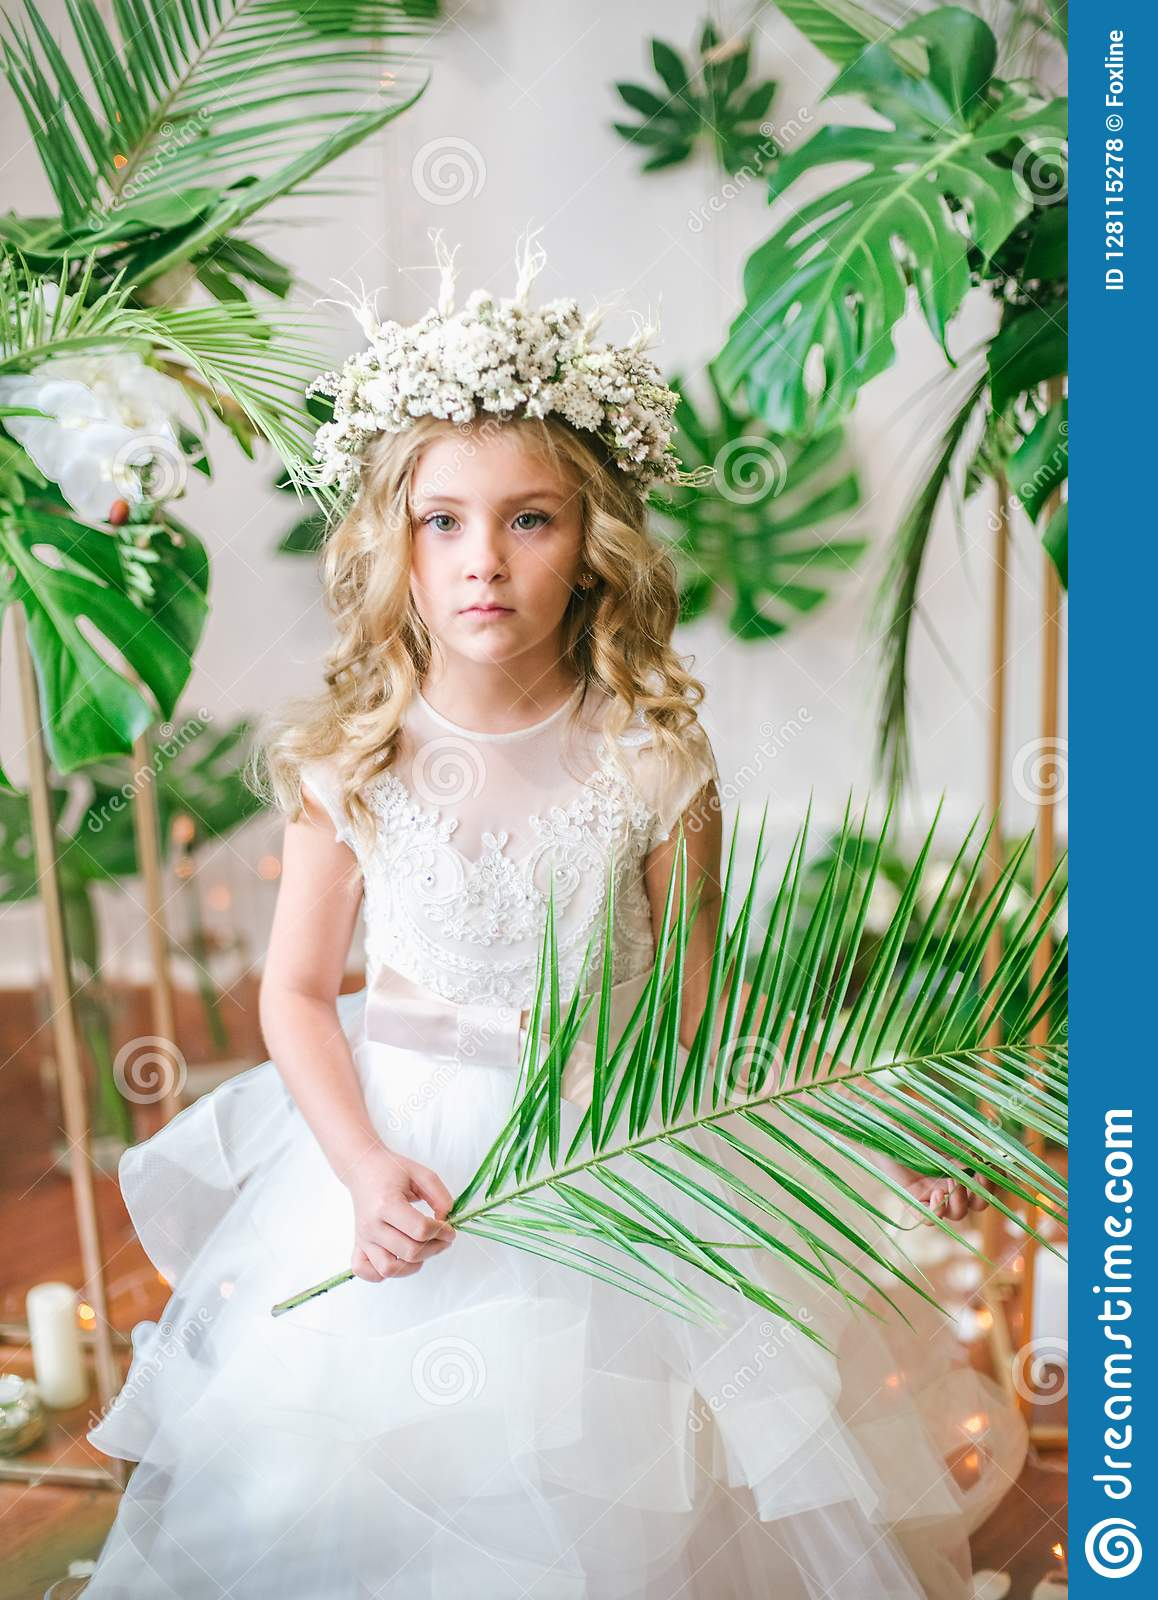 Cute Little Girl With Blond Curly Hair In A White Wedding